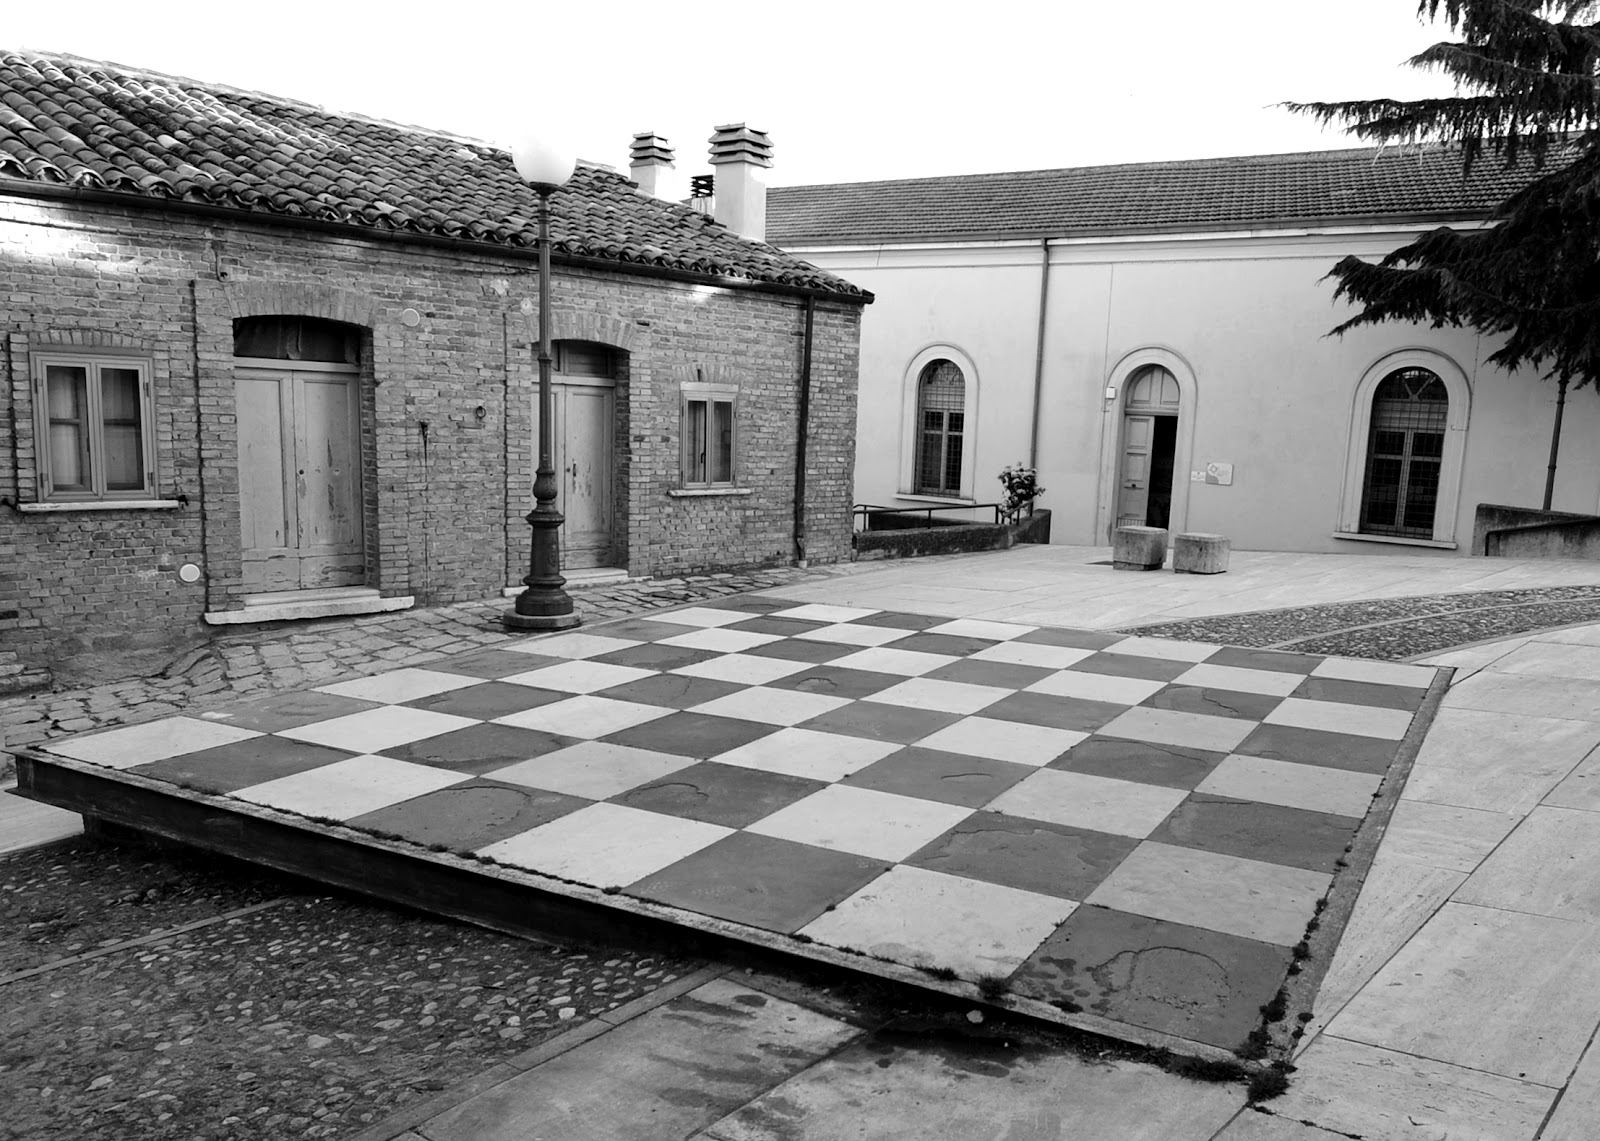 museo-all-aperto-36-